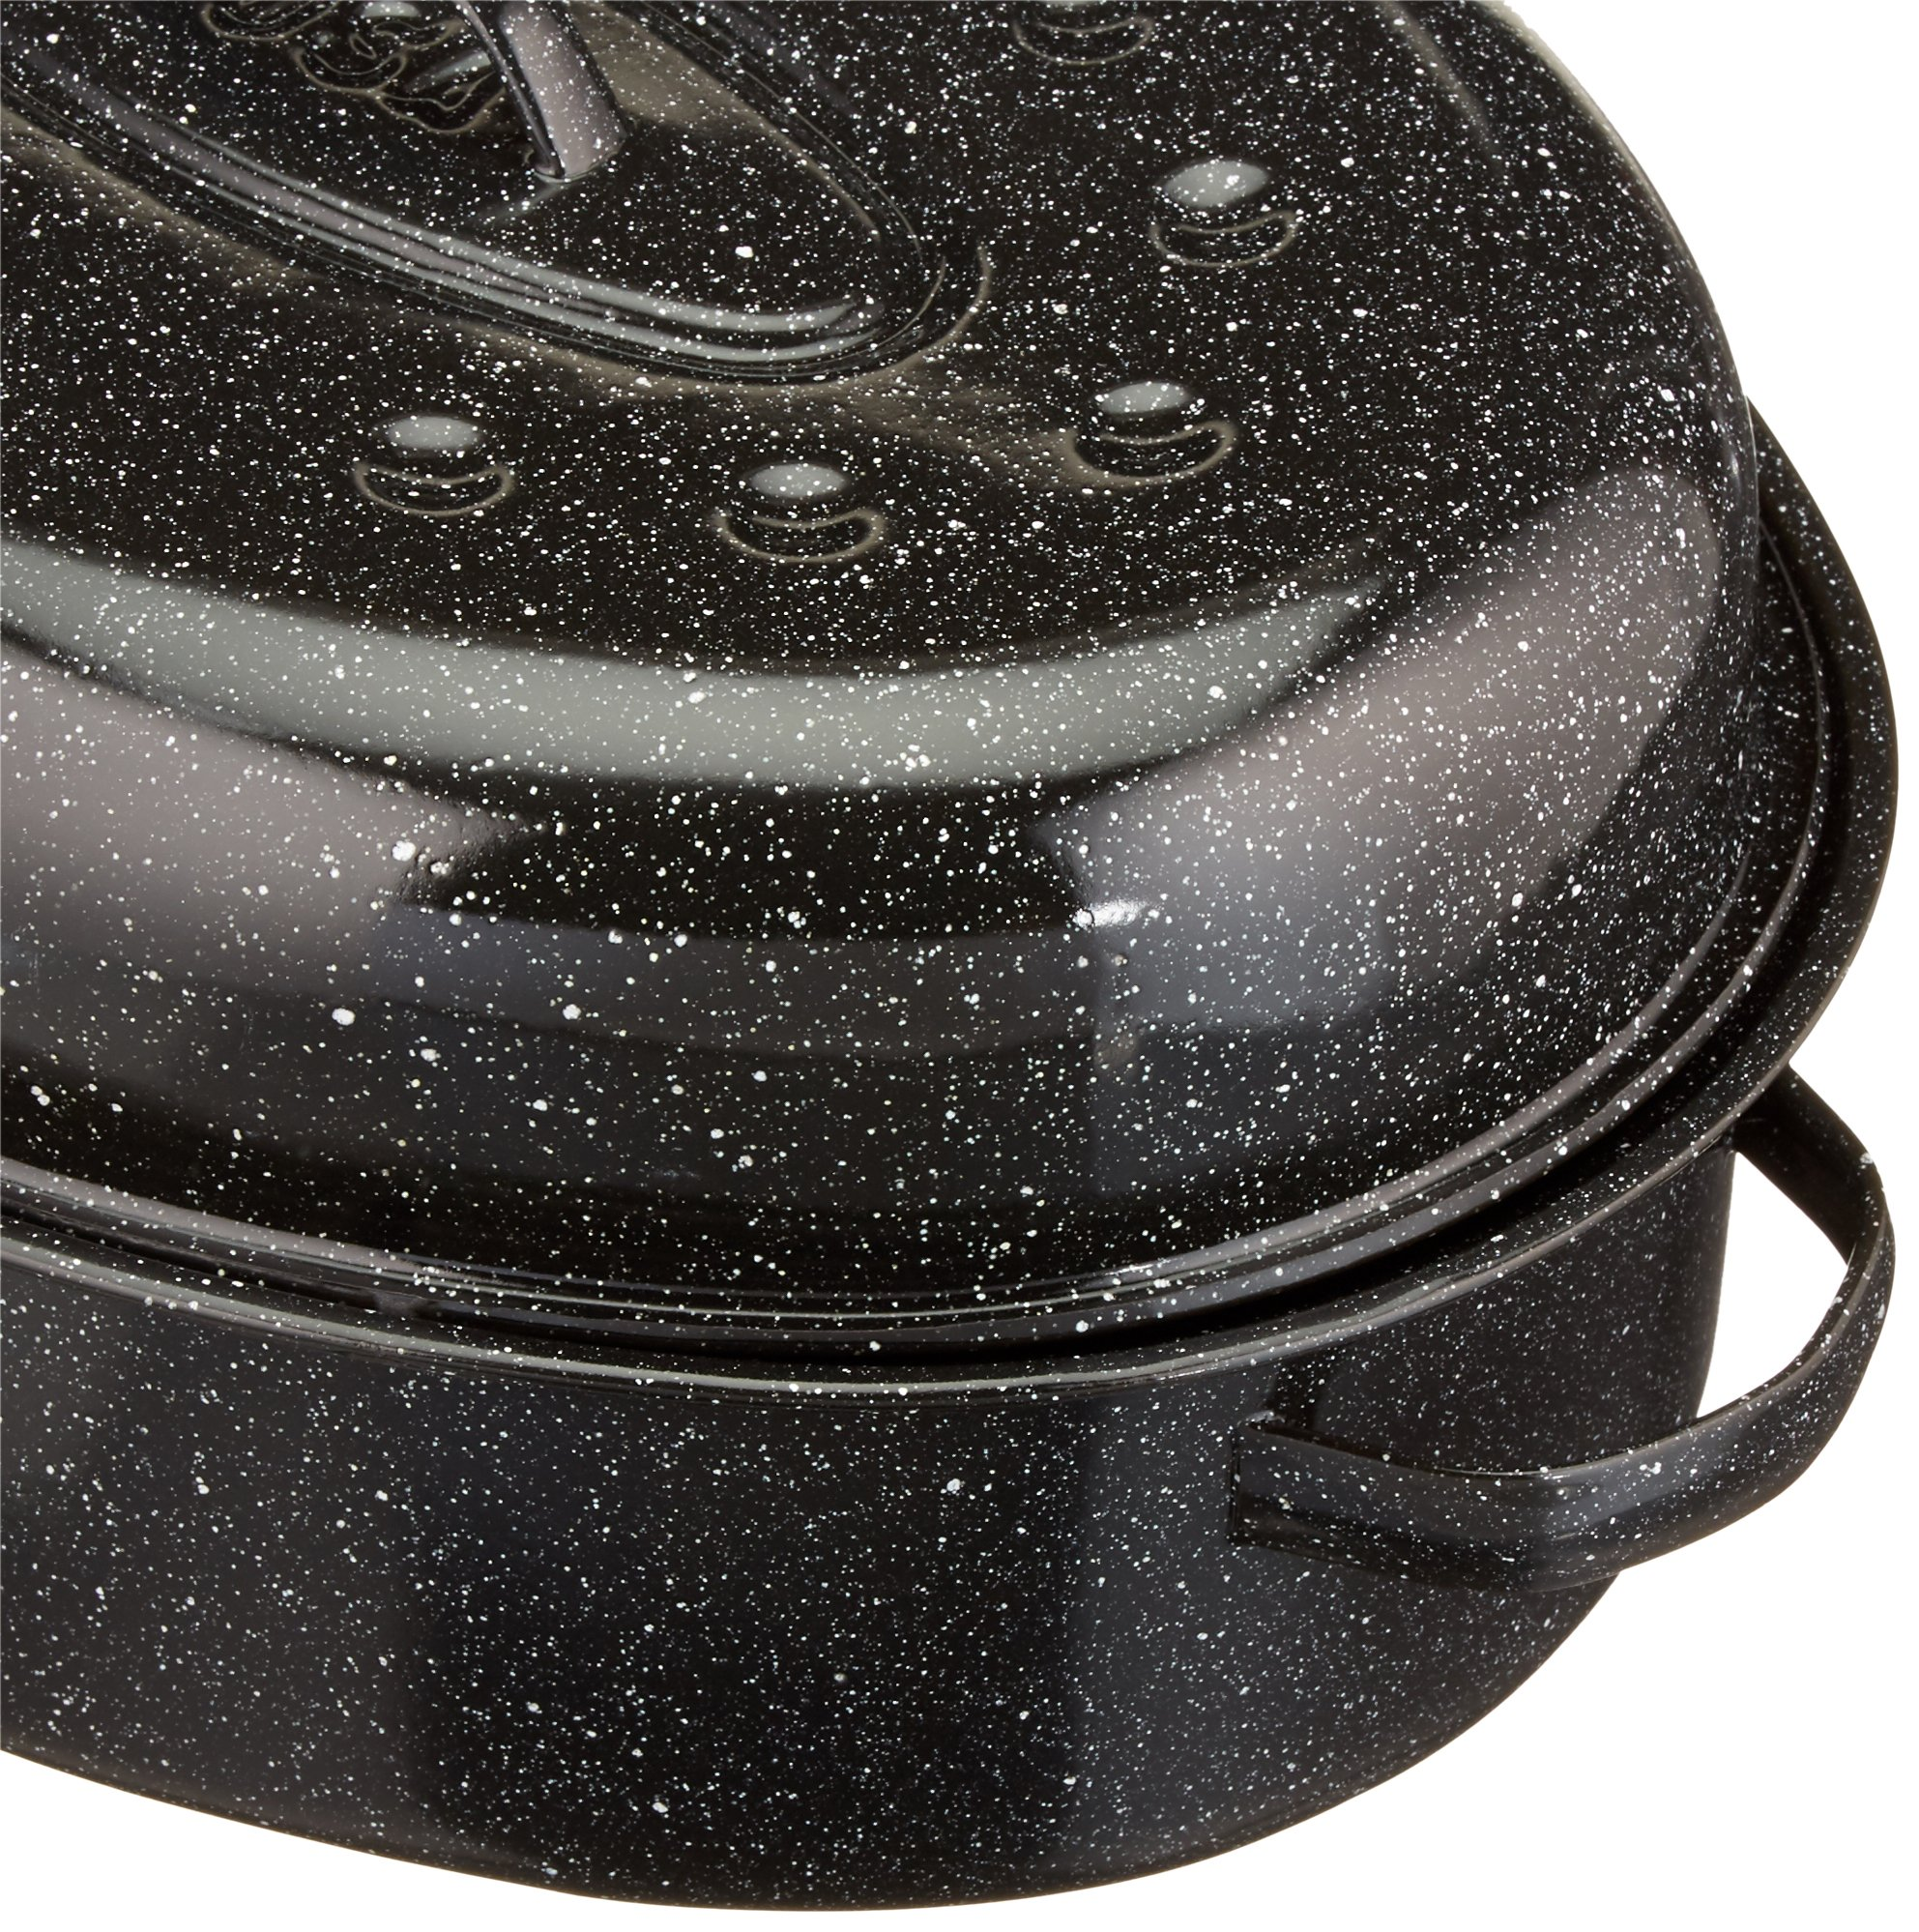 Granite Ware 18-Inch Covered Oval Roaster by Columbian Home (Image #3)